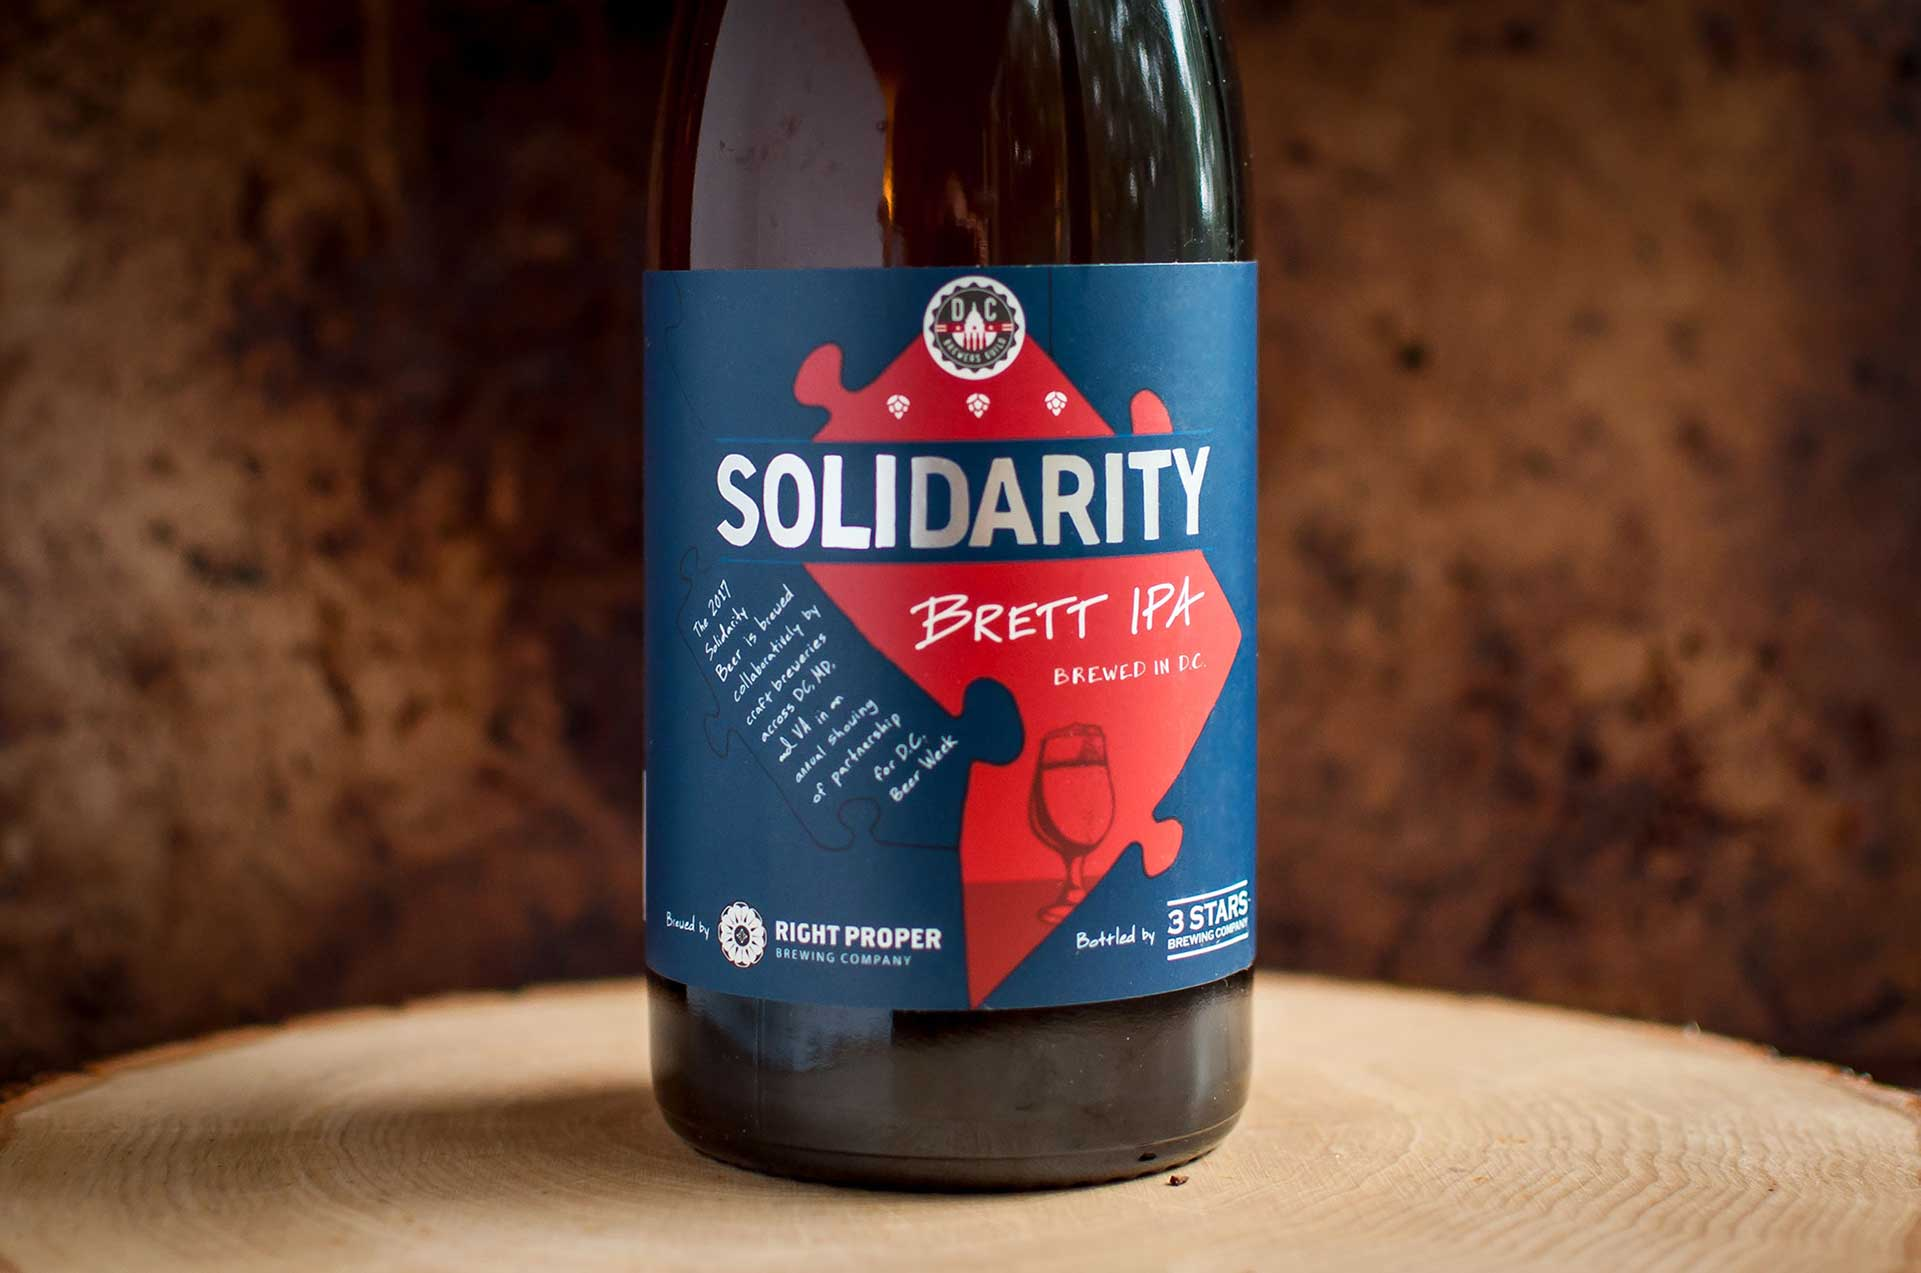 2017 Solidarity Beer Label